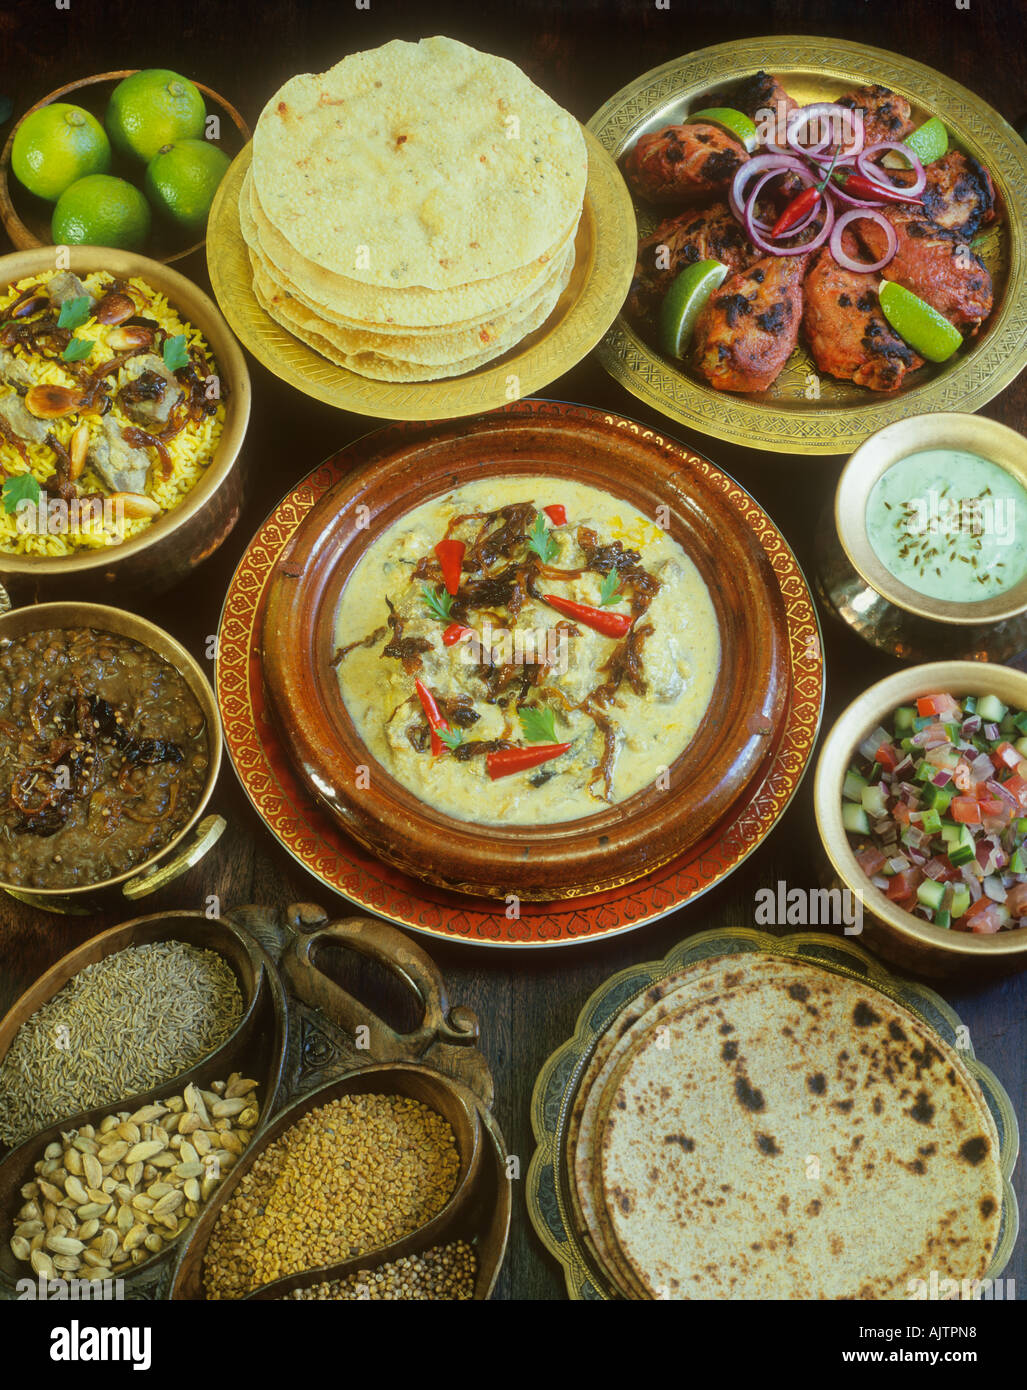 North India Food - Stock Image